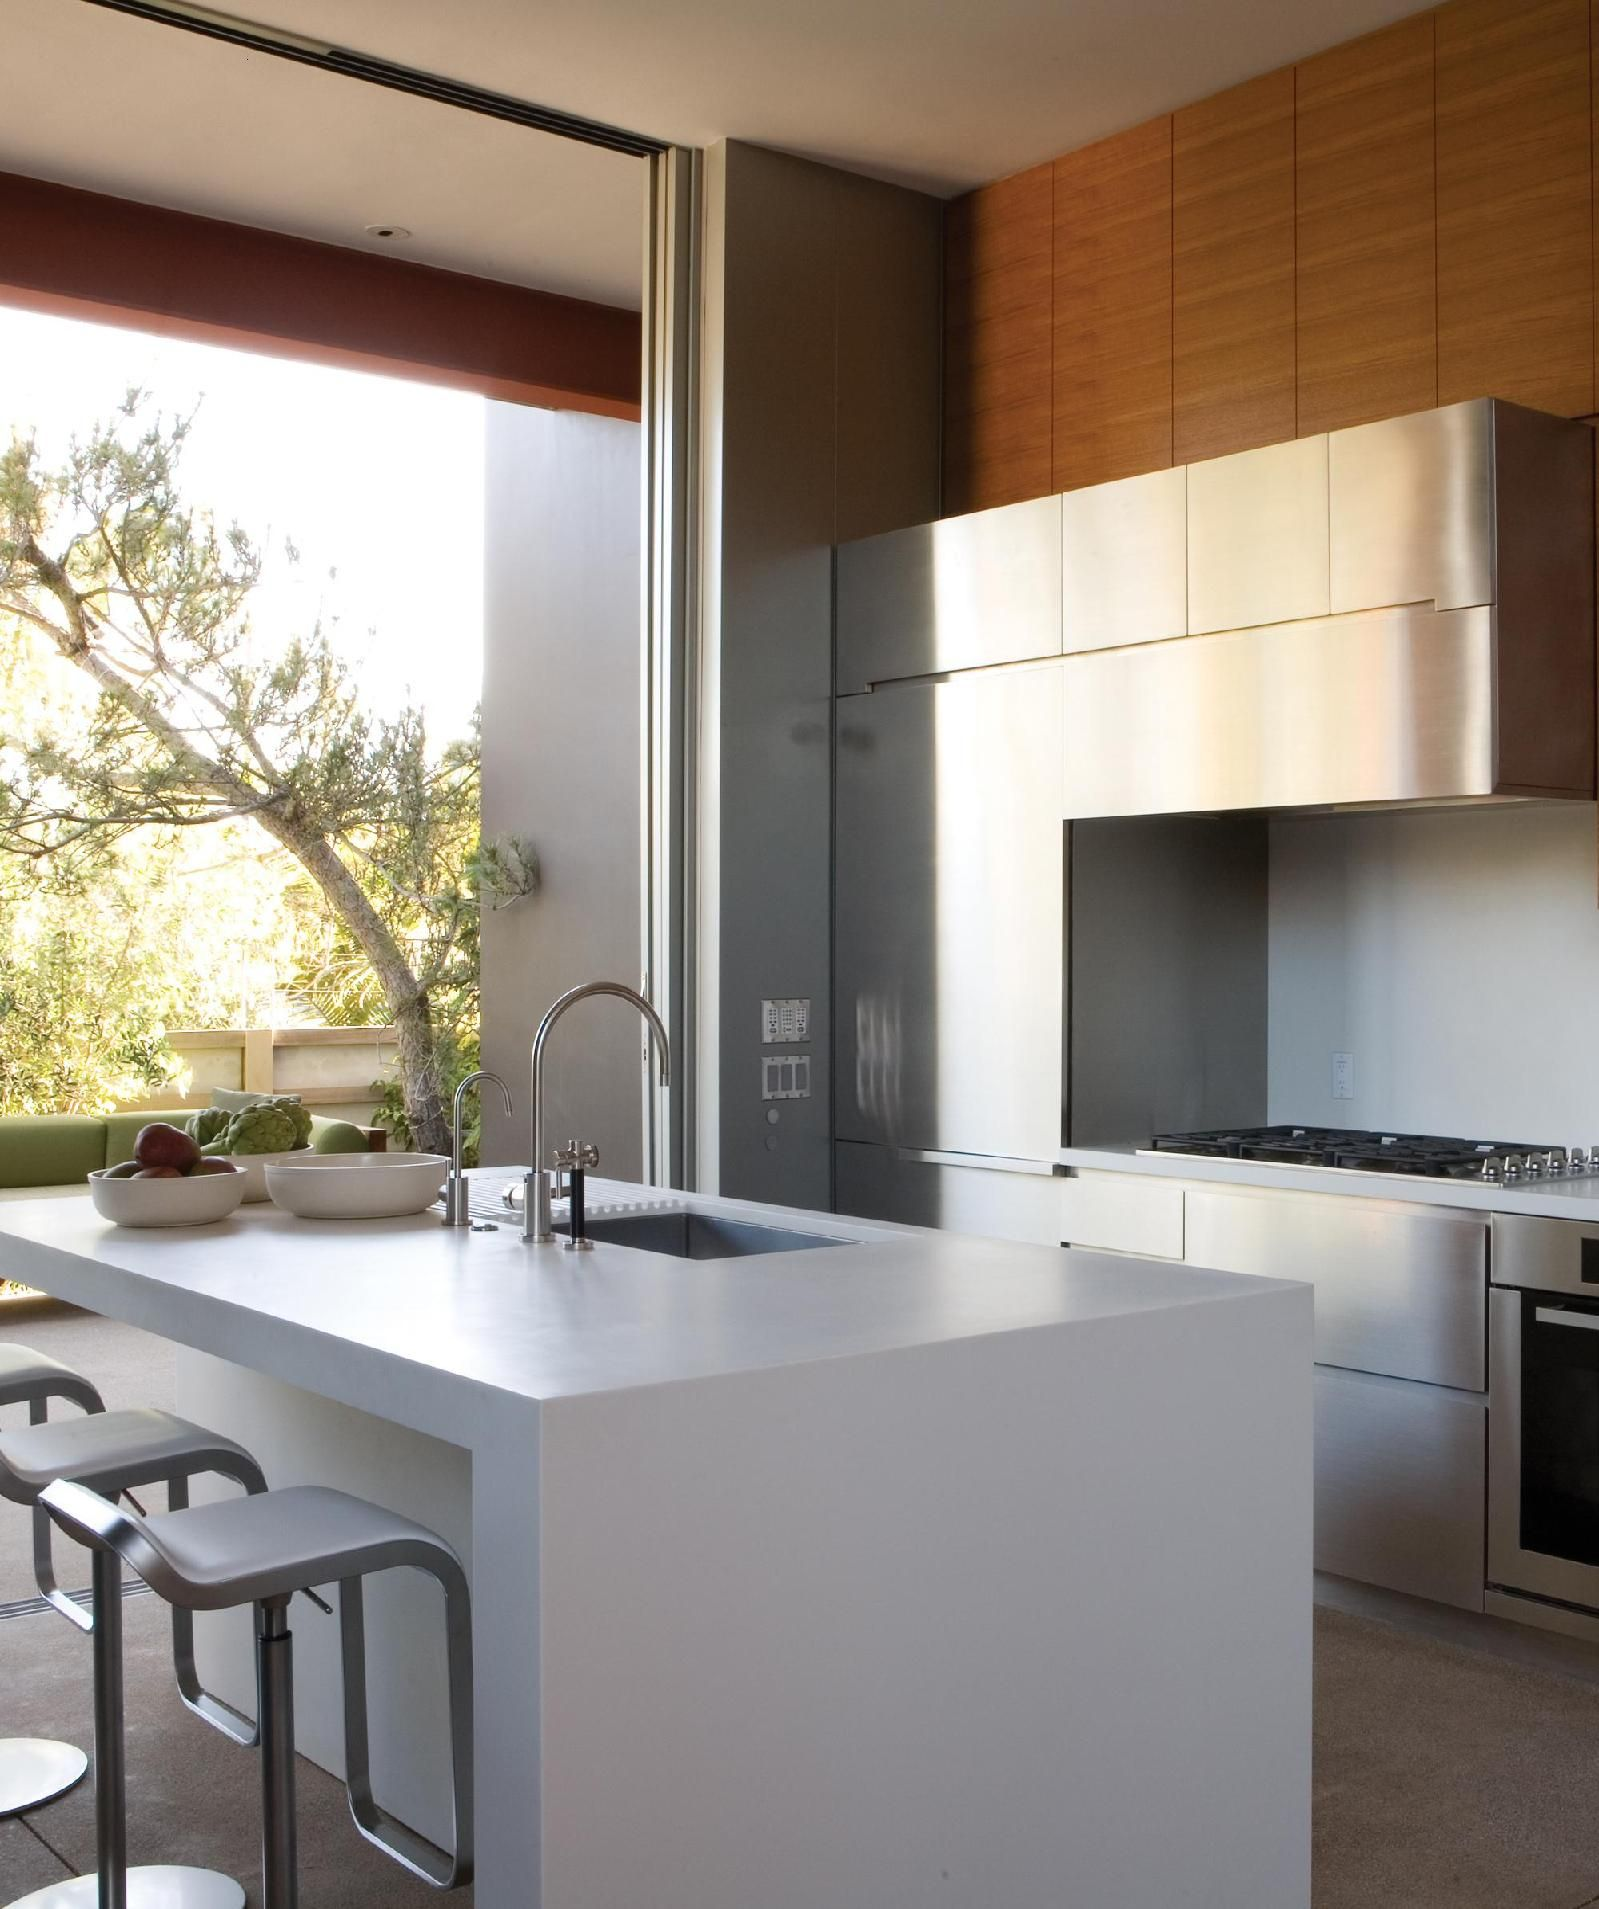 Incredible Kitchen Remodeling Ideas: 25+ Incredible Good Kitchen Design Ideas